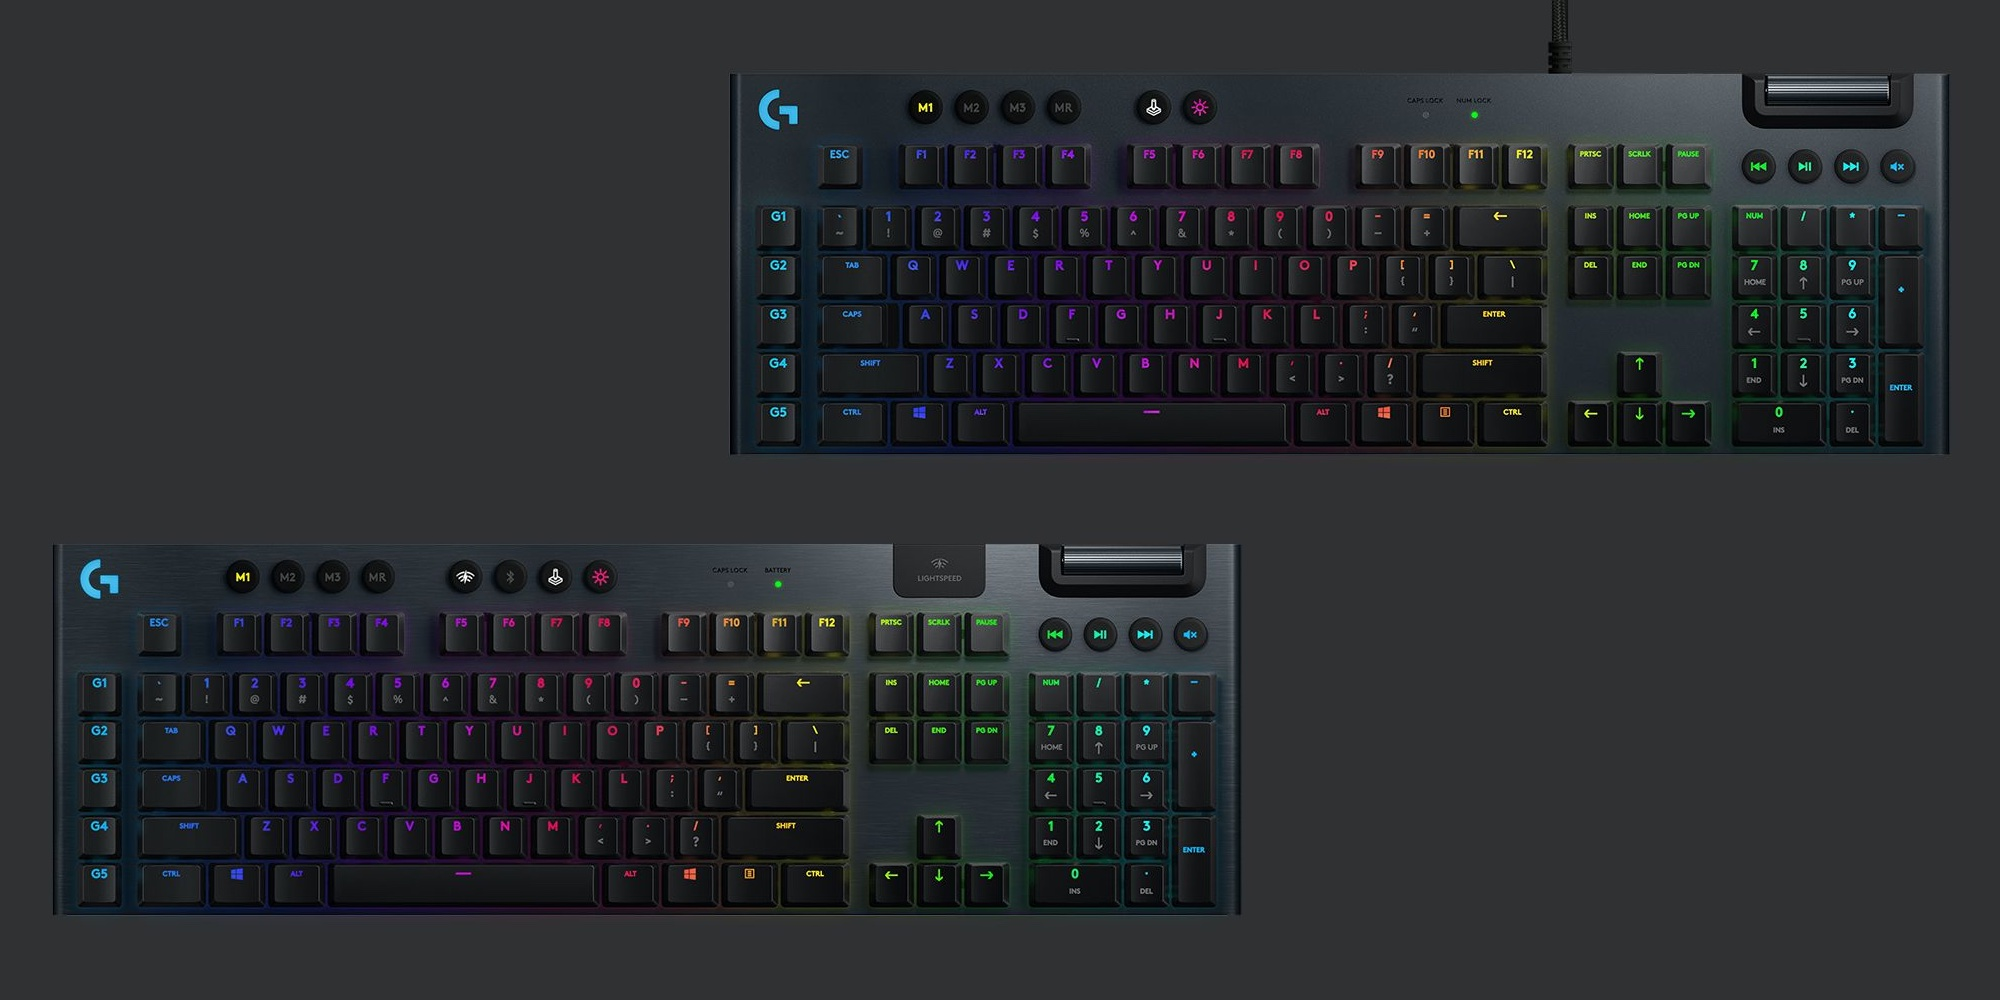 Logitech G915 Gaming Keyboard debuts with new key switches